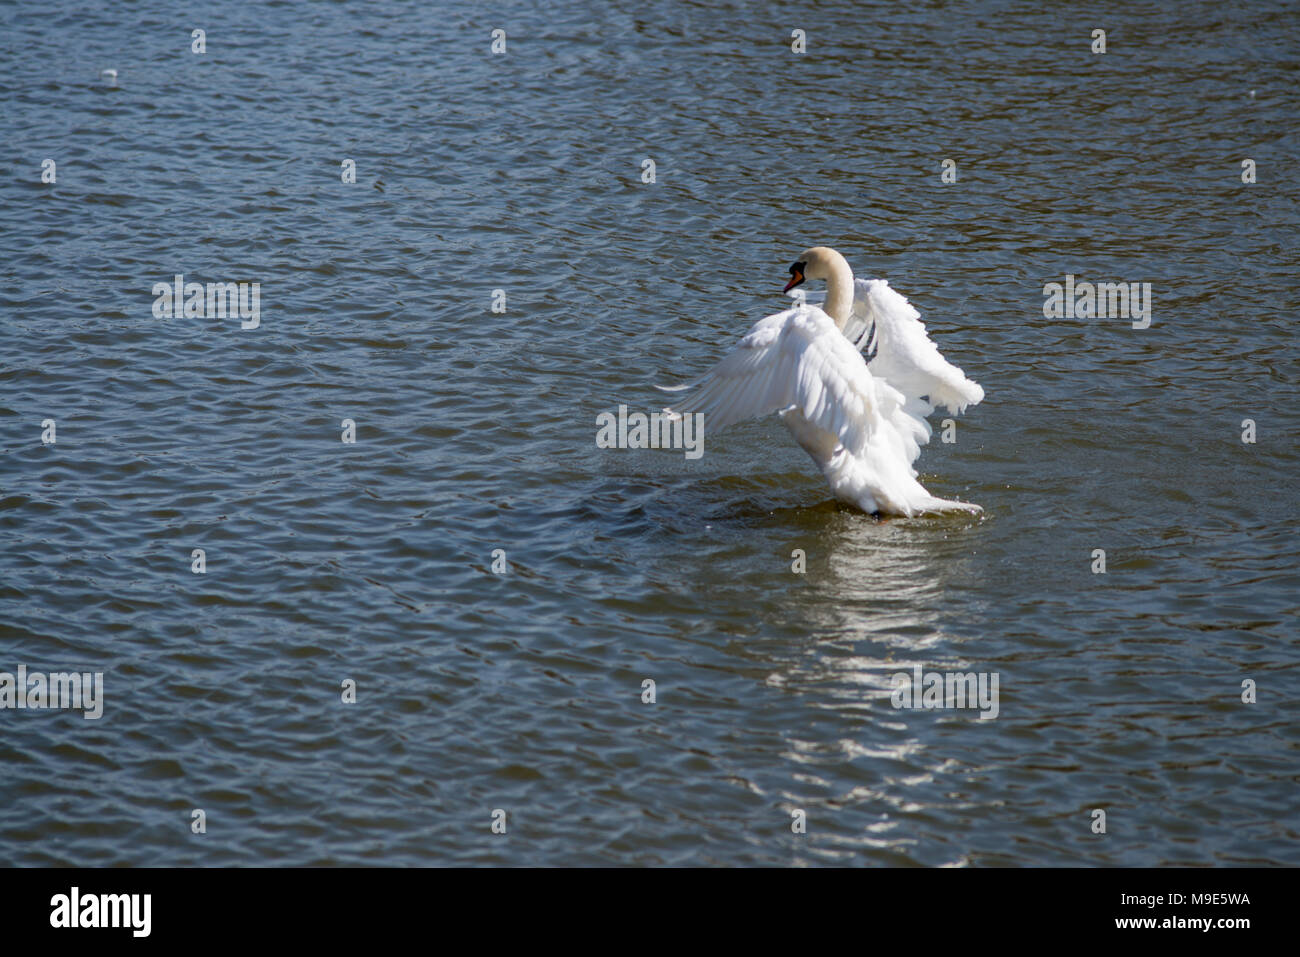 white mute swan stretching its wings on a summers day on water Stock Photo